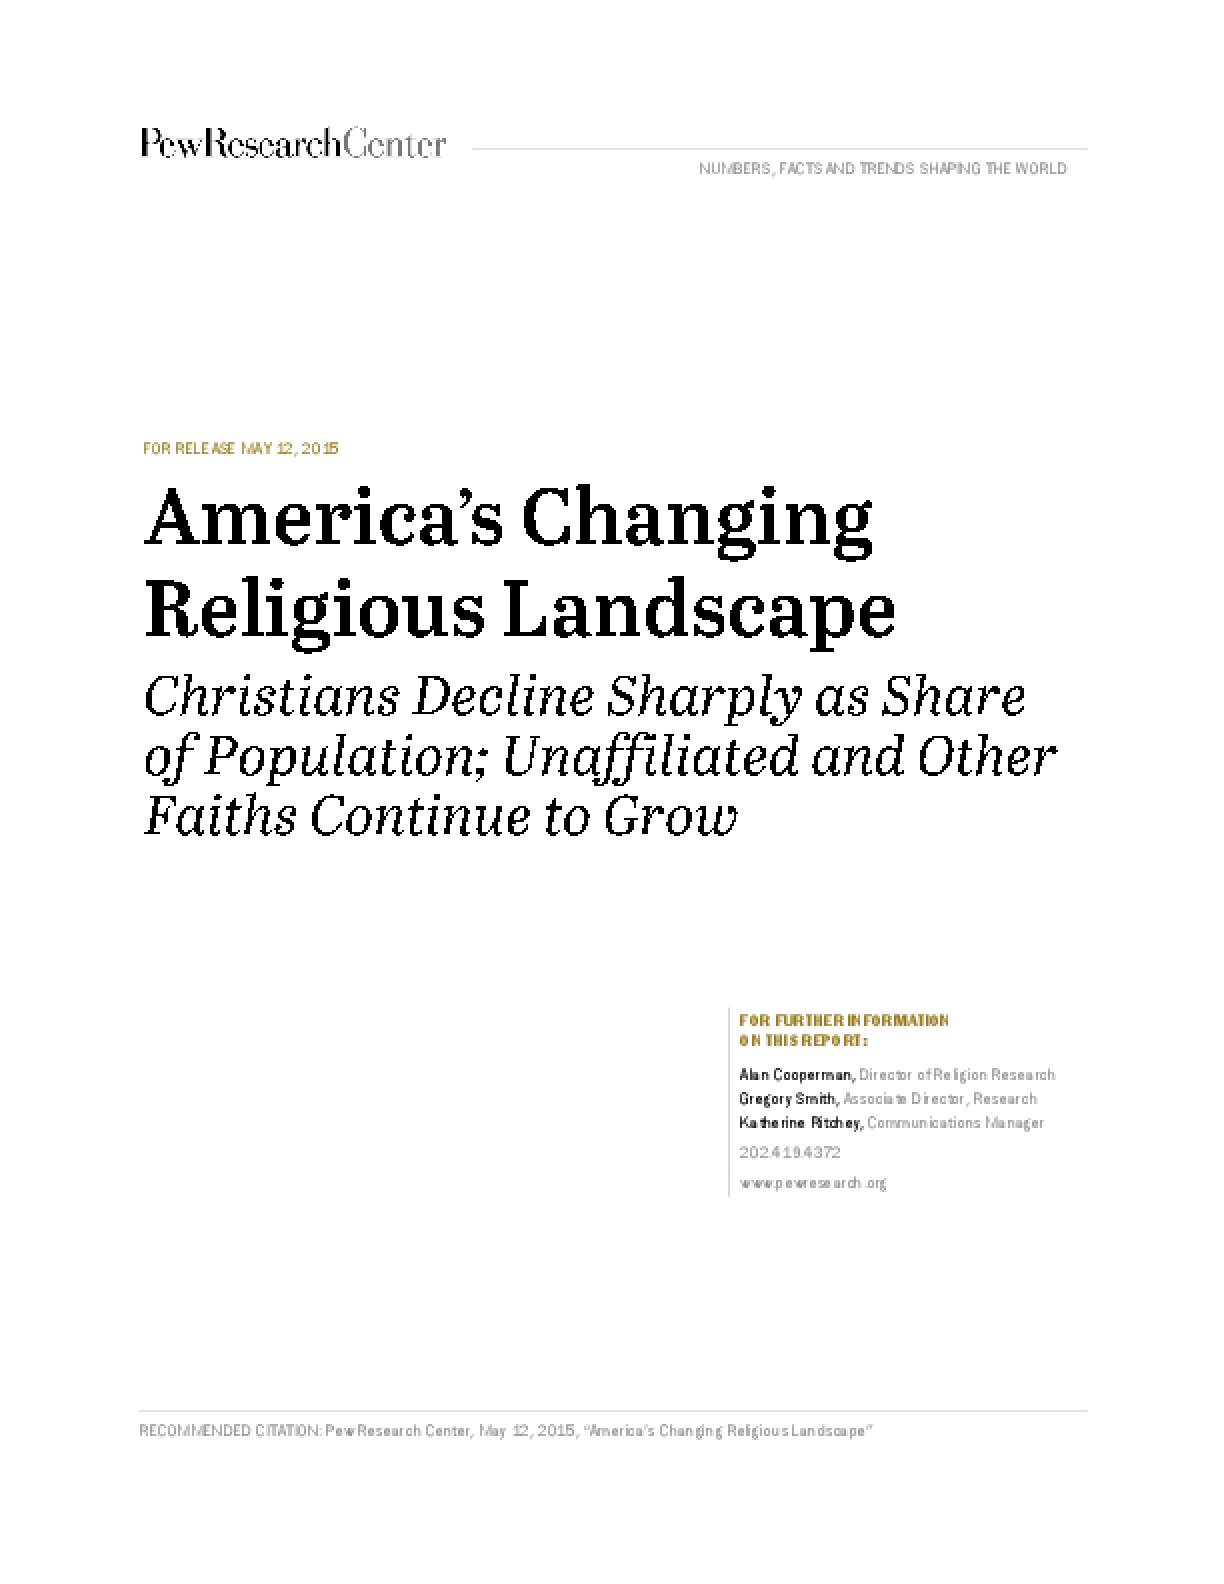 America's Changing Religious Landscape: Christians Decline Sharply as Share of Population; Unaffiliated and Other Faiths Continue to Grow